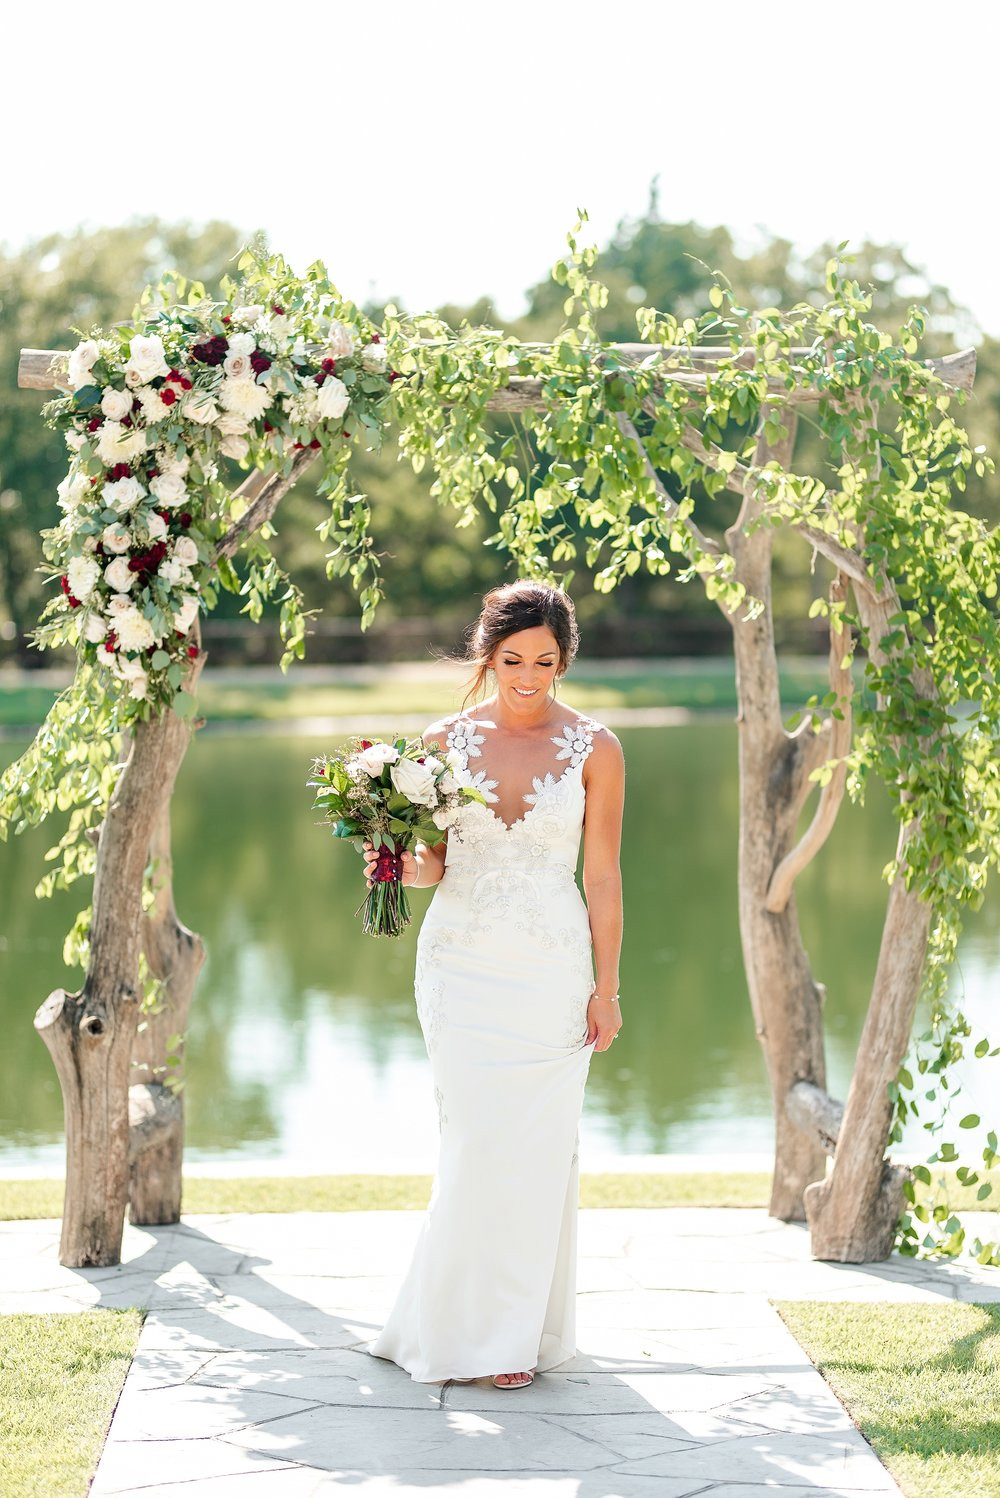 The bride stands holding her bridal bouquet under the arch. The colors she chose are undeniably fitting for an Aggie bride!